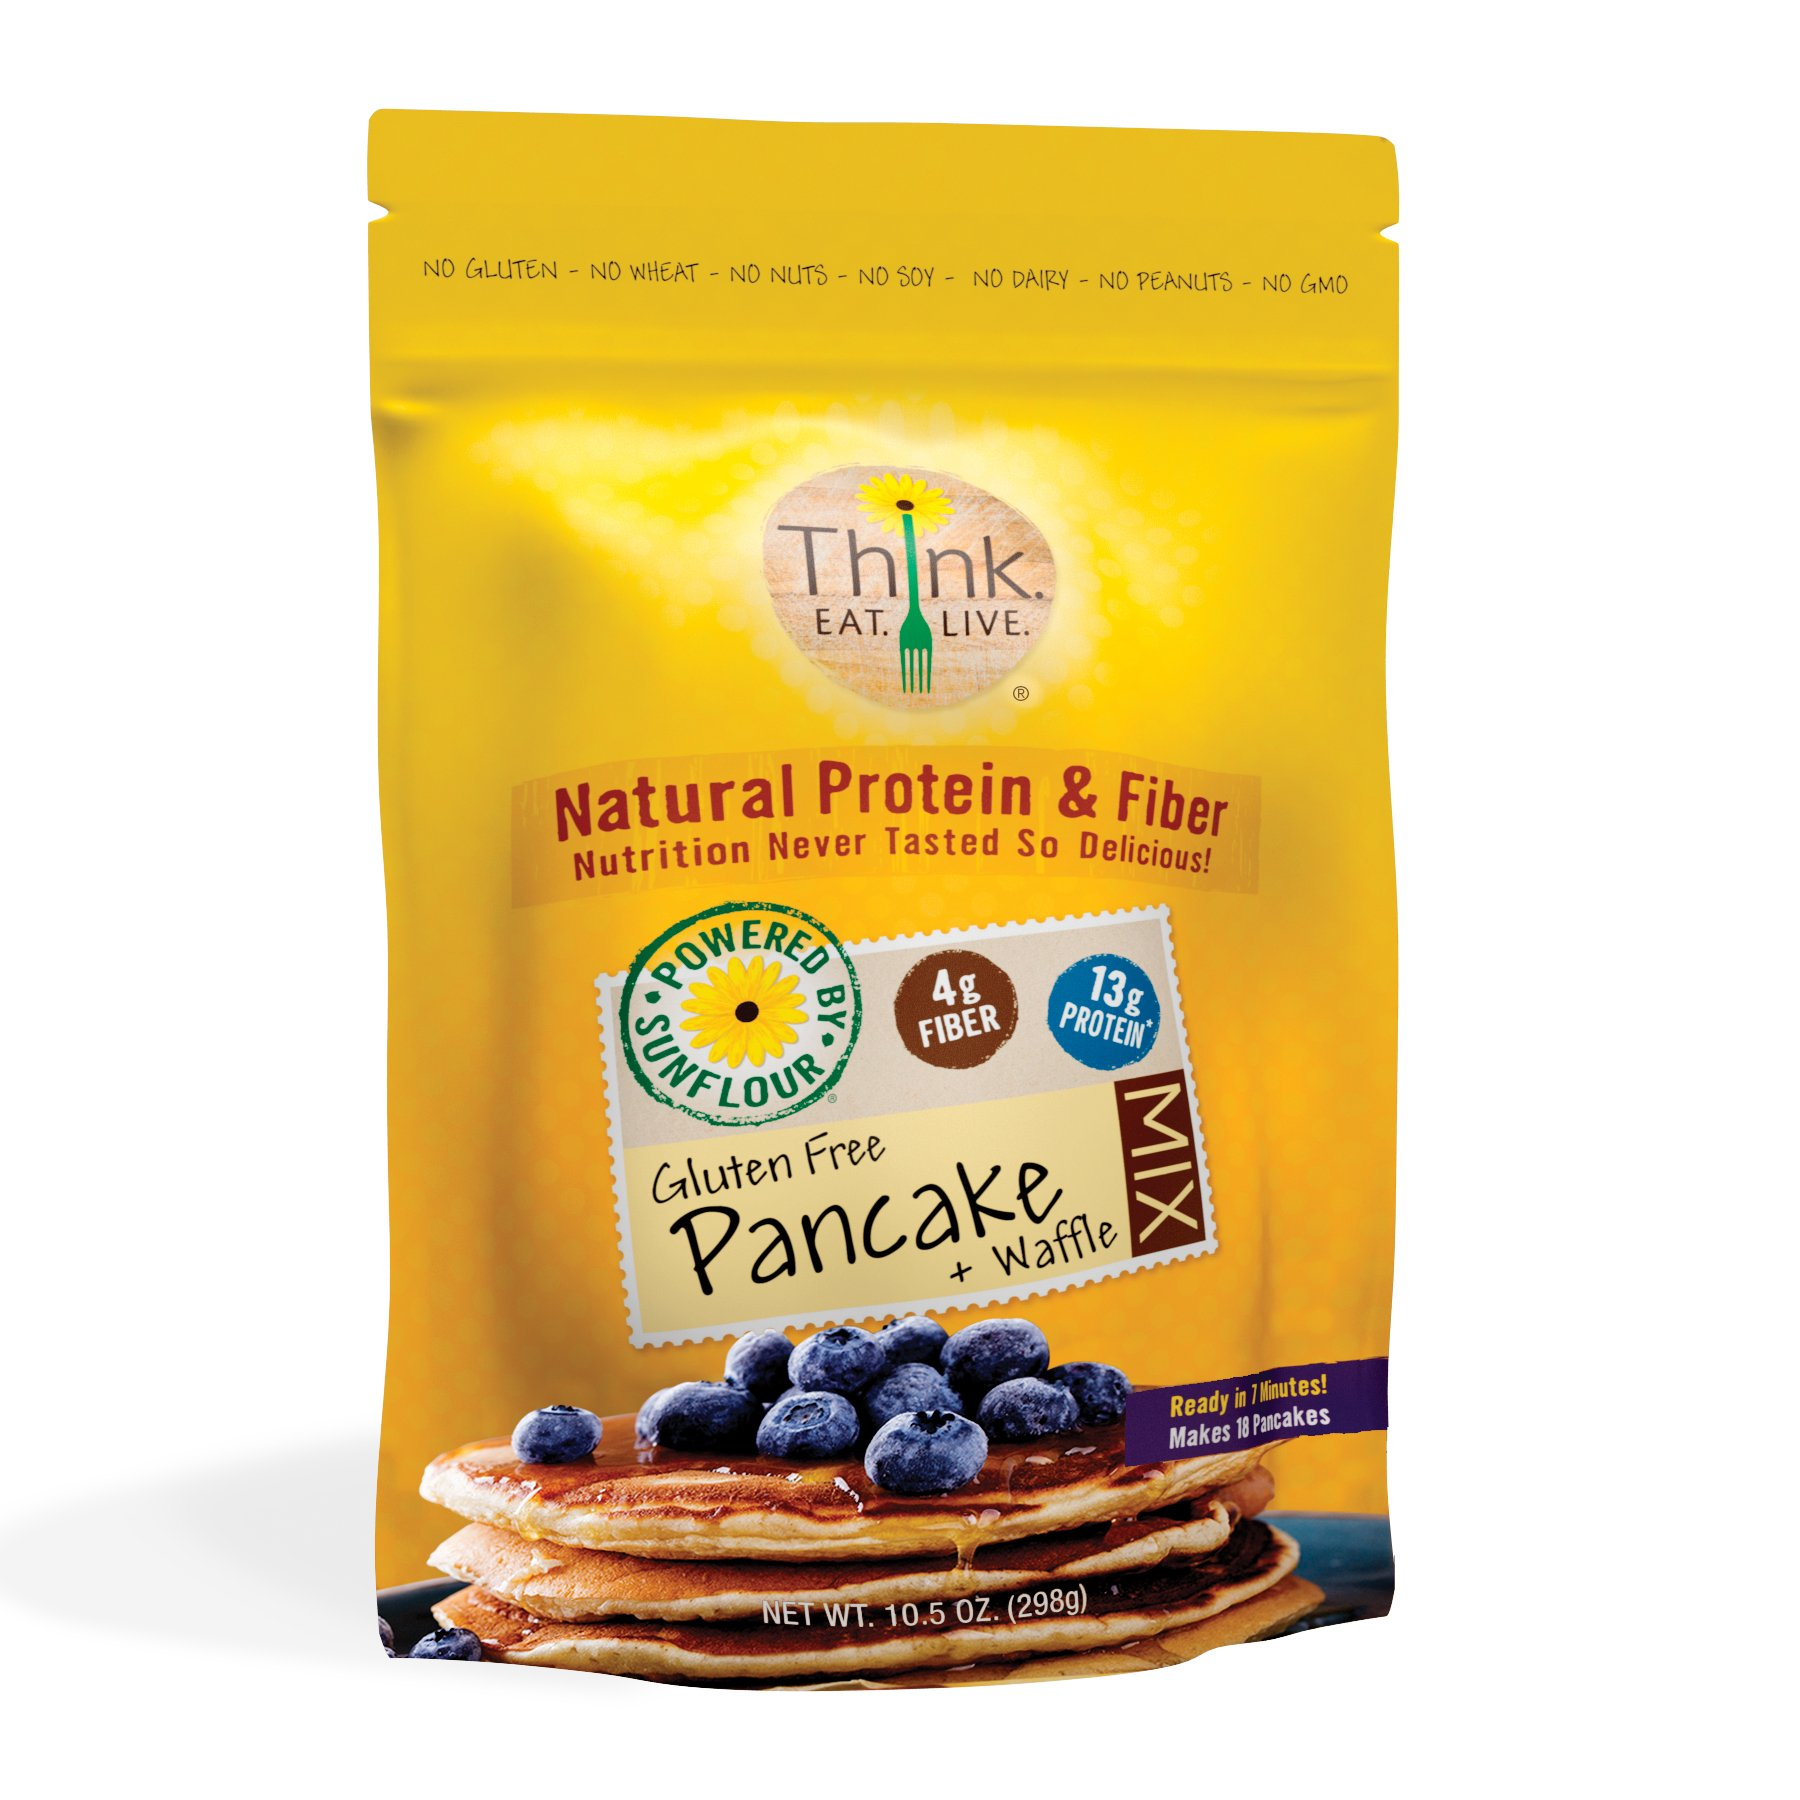 Think.Eat.Live. SunFlour Pancake & Waffle Mix by Think.Eat.Live.